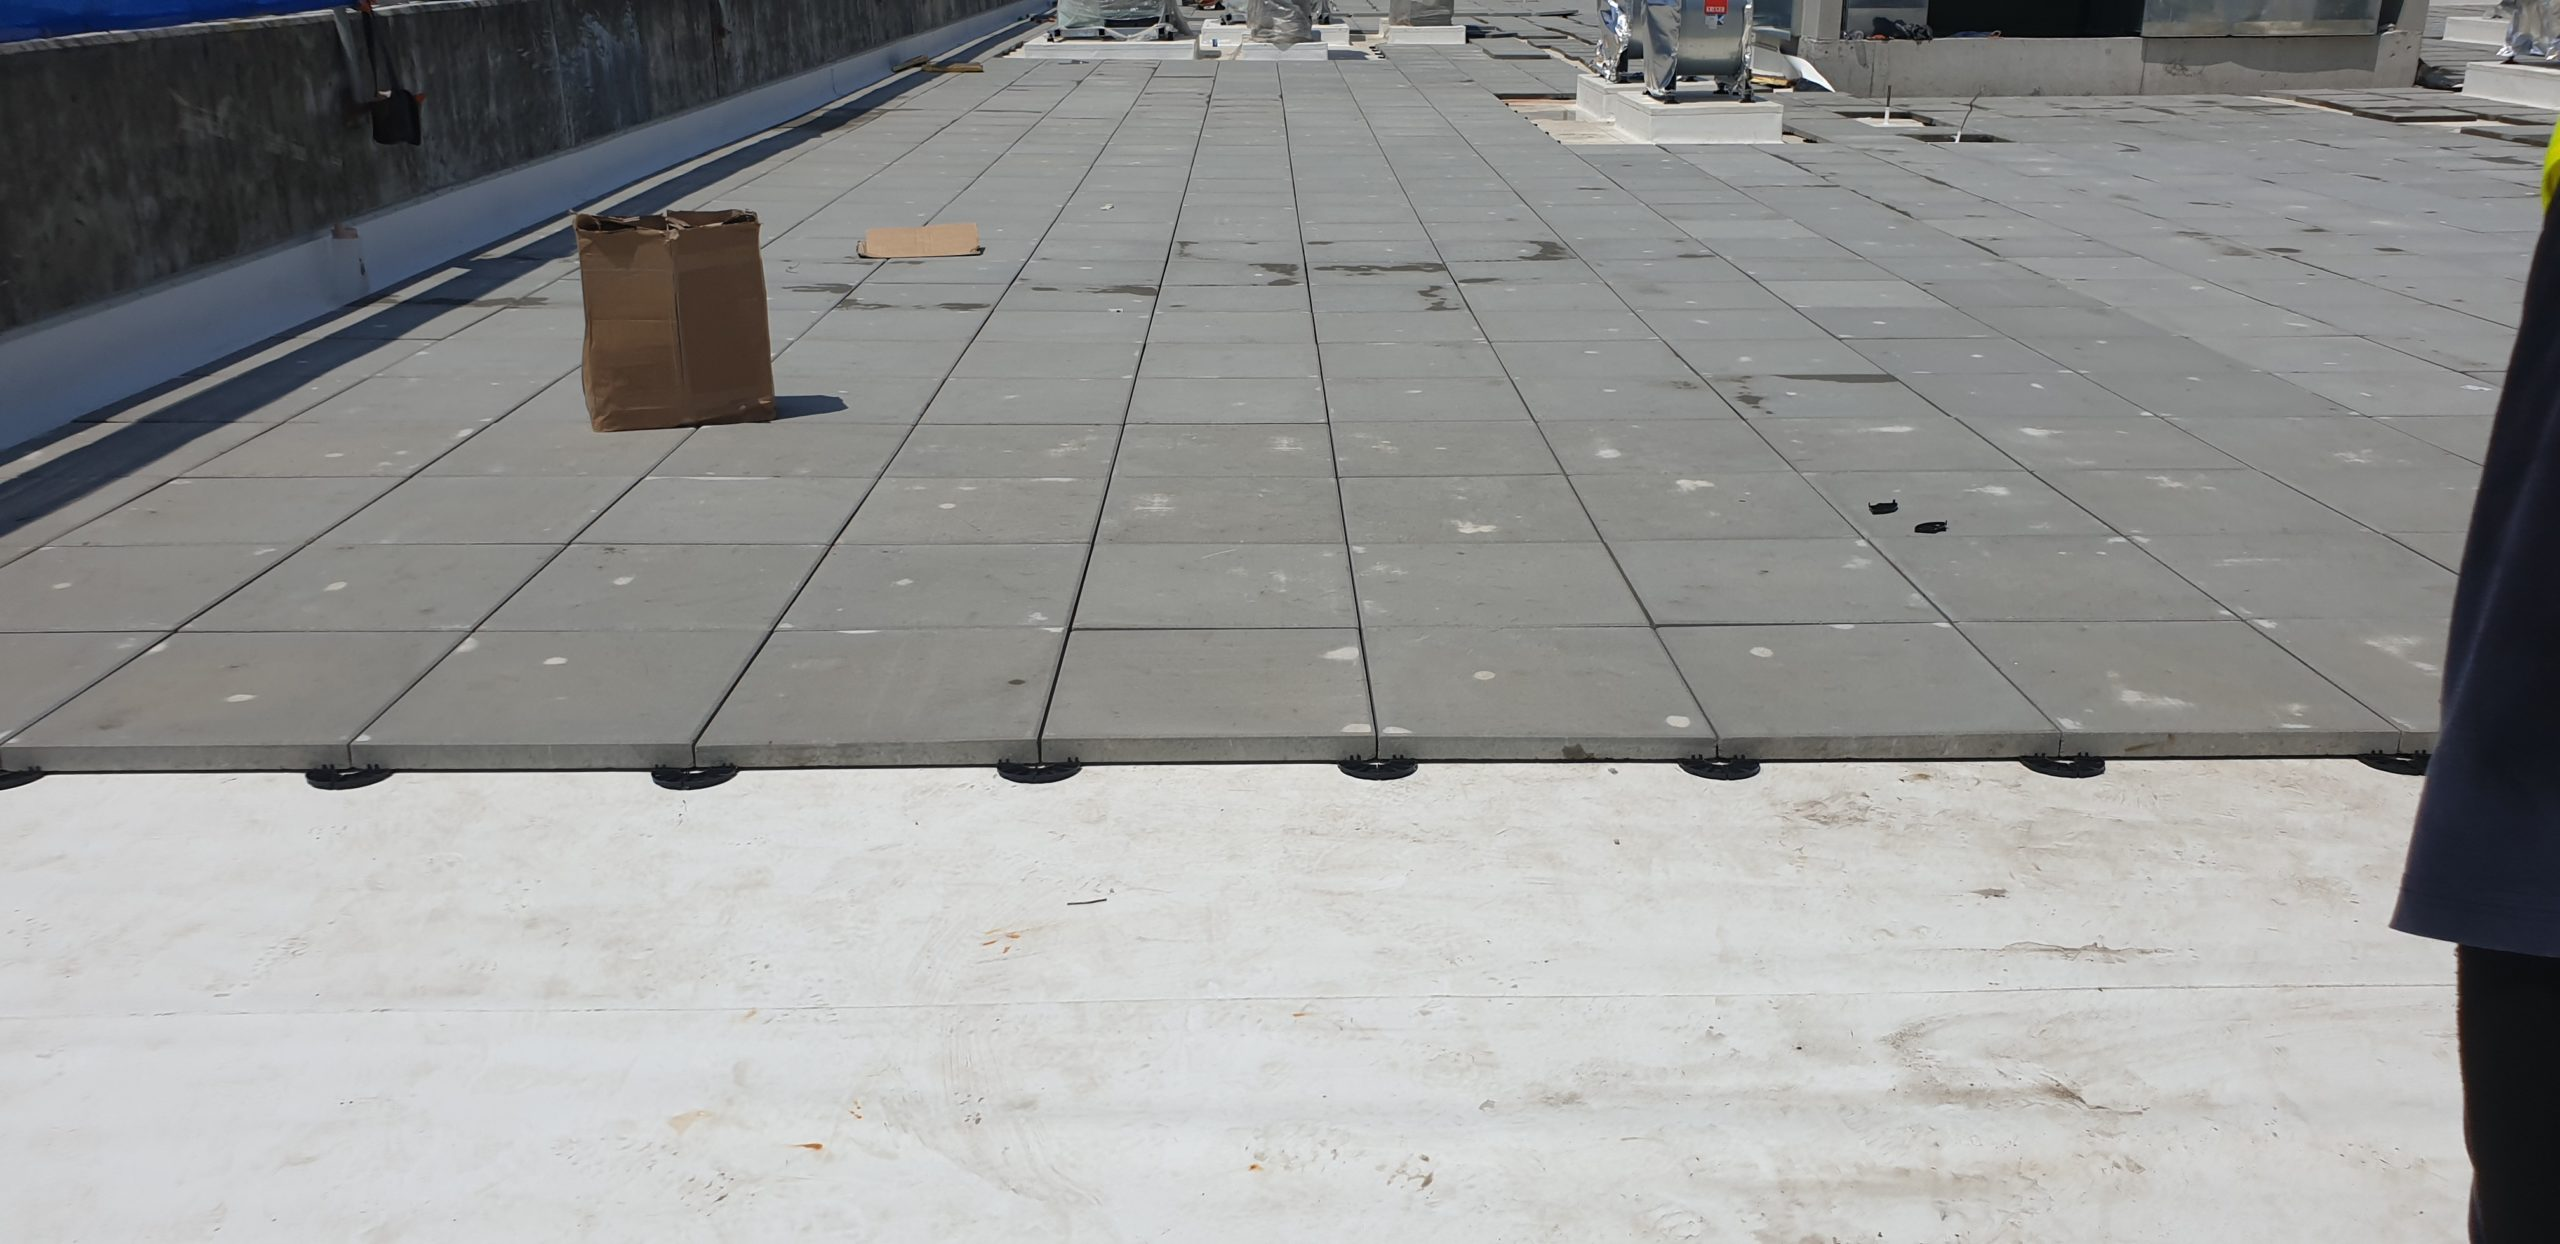 ventilated terrace on low support pads